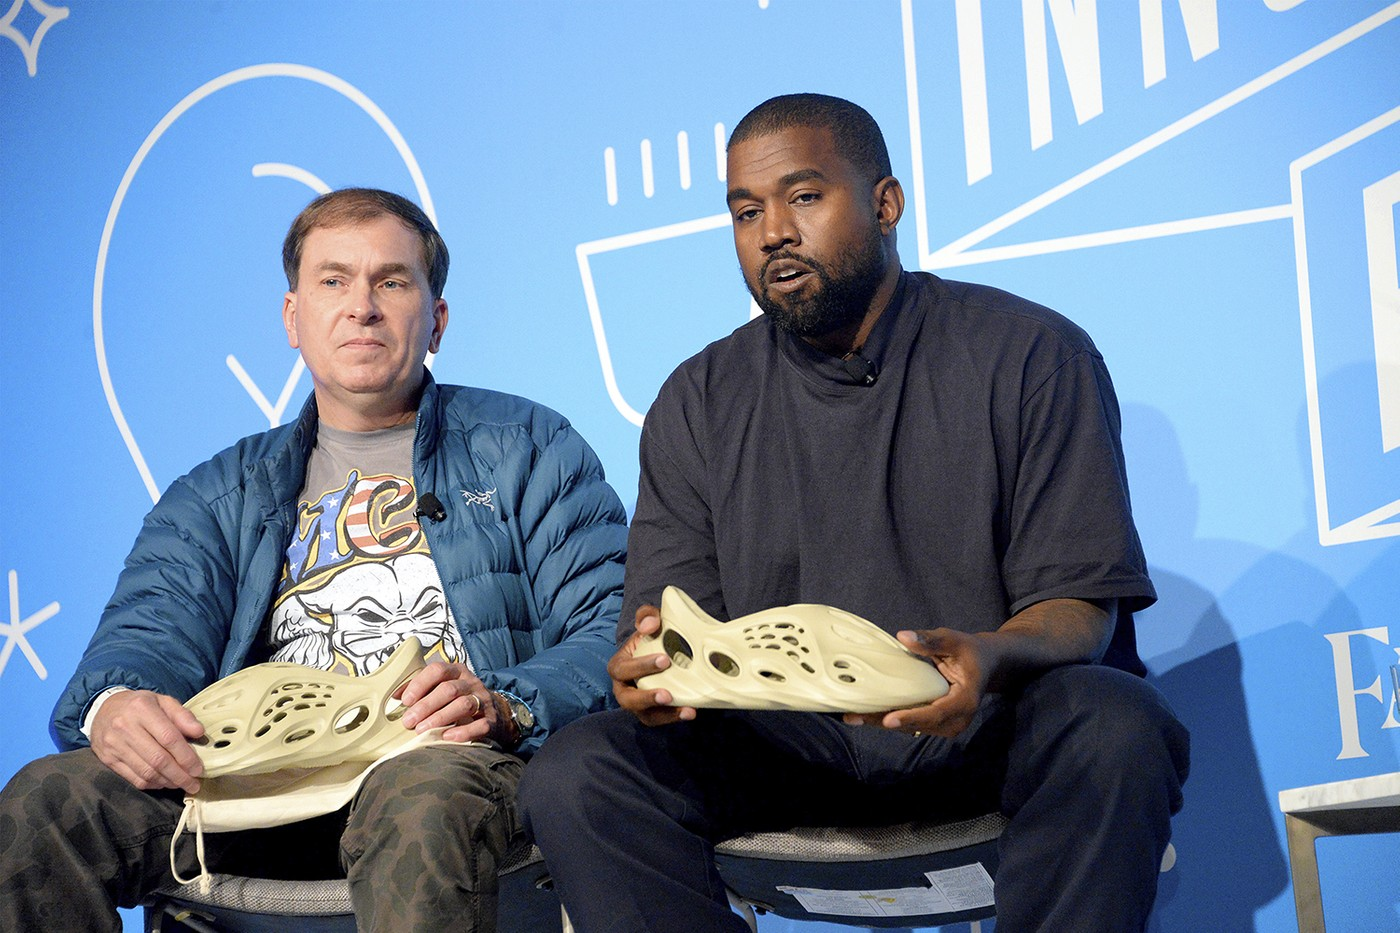 Kanye West Says Yeezy Foam Runner Is Made in USA from Algae